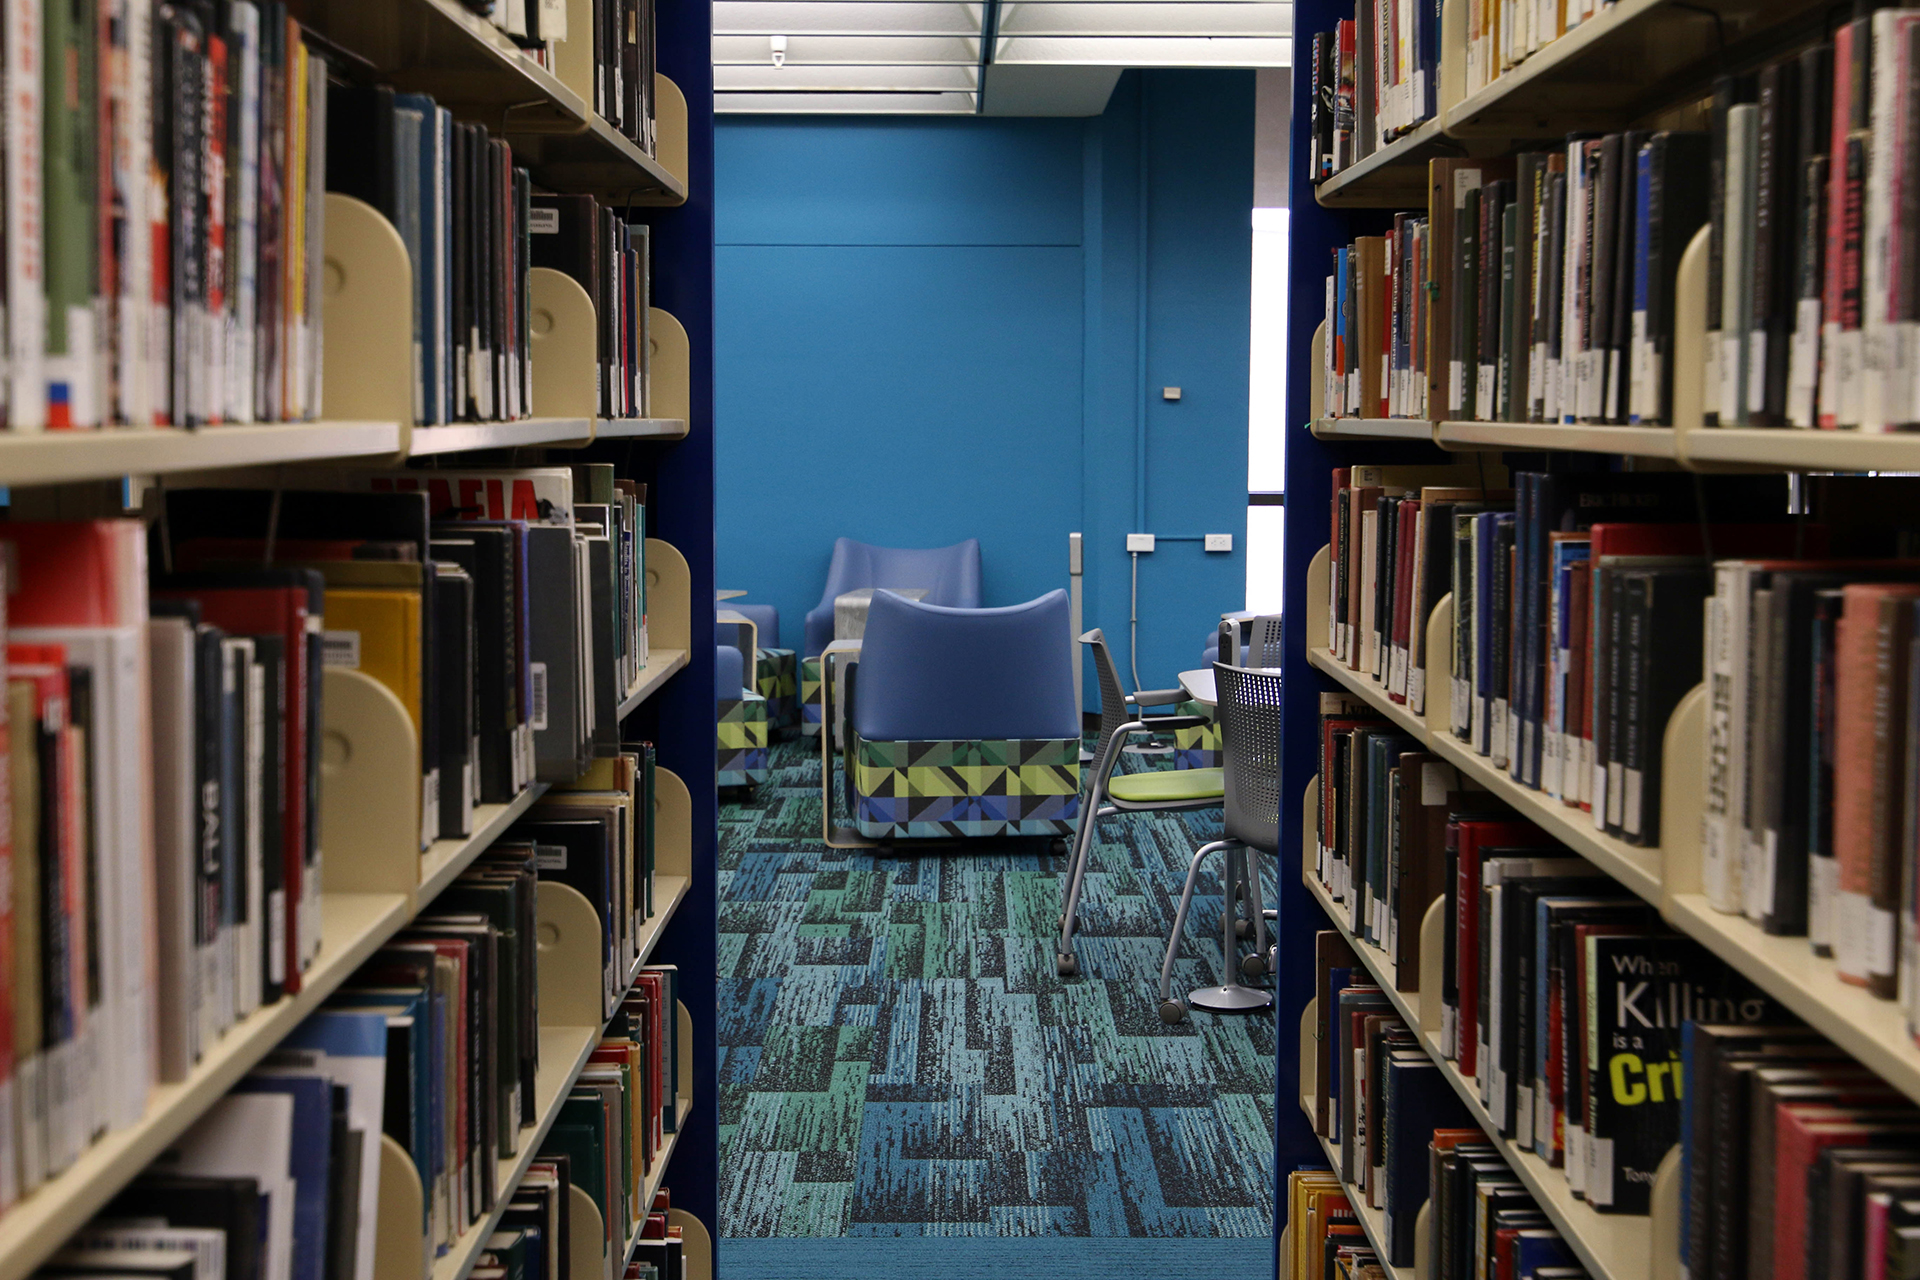 Peering through the stacks into the renovated 5th floor of PCL.